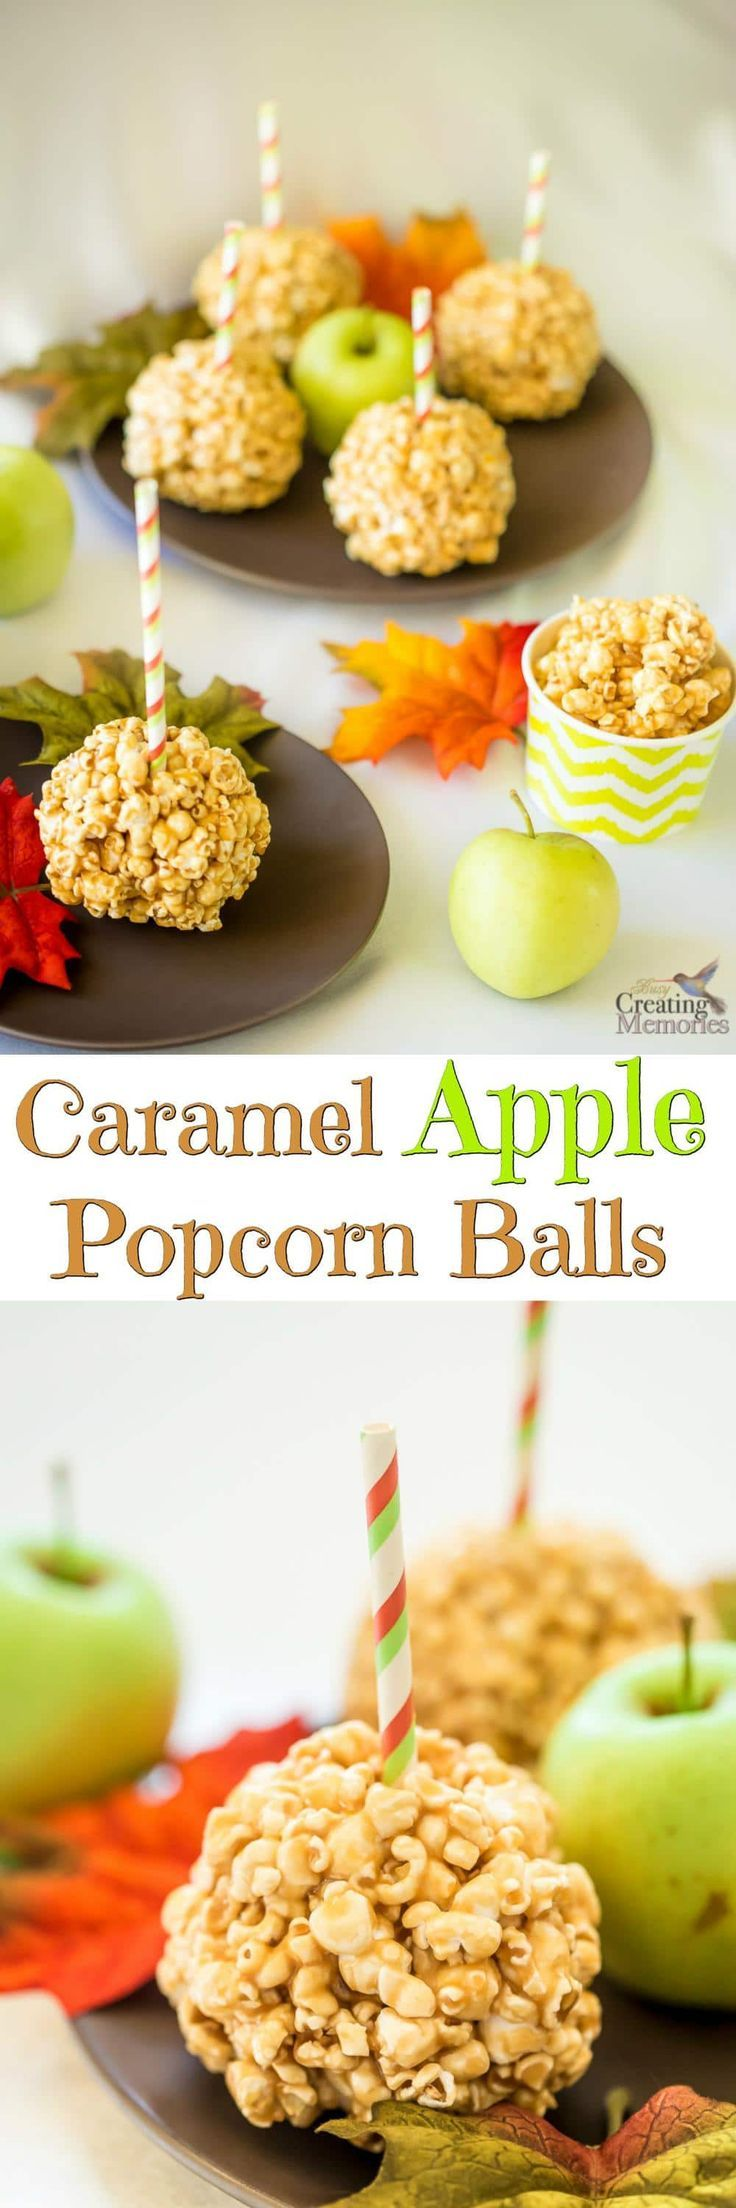 Taste the beauty of autumn with an easy homemade Caramel Apple Popcorn Balls recipe. Imagine apple infused caramel drizzled over a bed of fluffy white air-popped popcorn and formed into soft mouthwatering popcorn balls that you can't stop eating! Perfect for Movie night snacks, Trick or treats, Holidays and more!